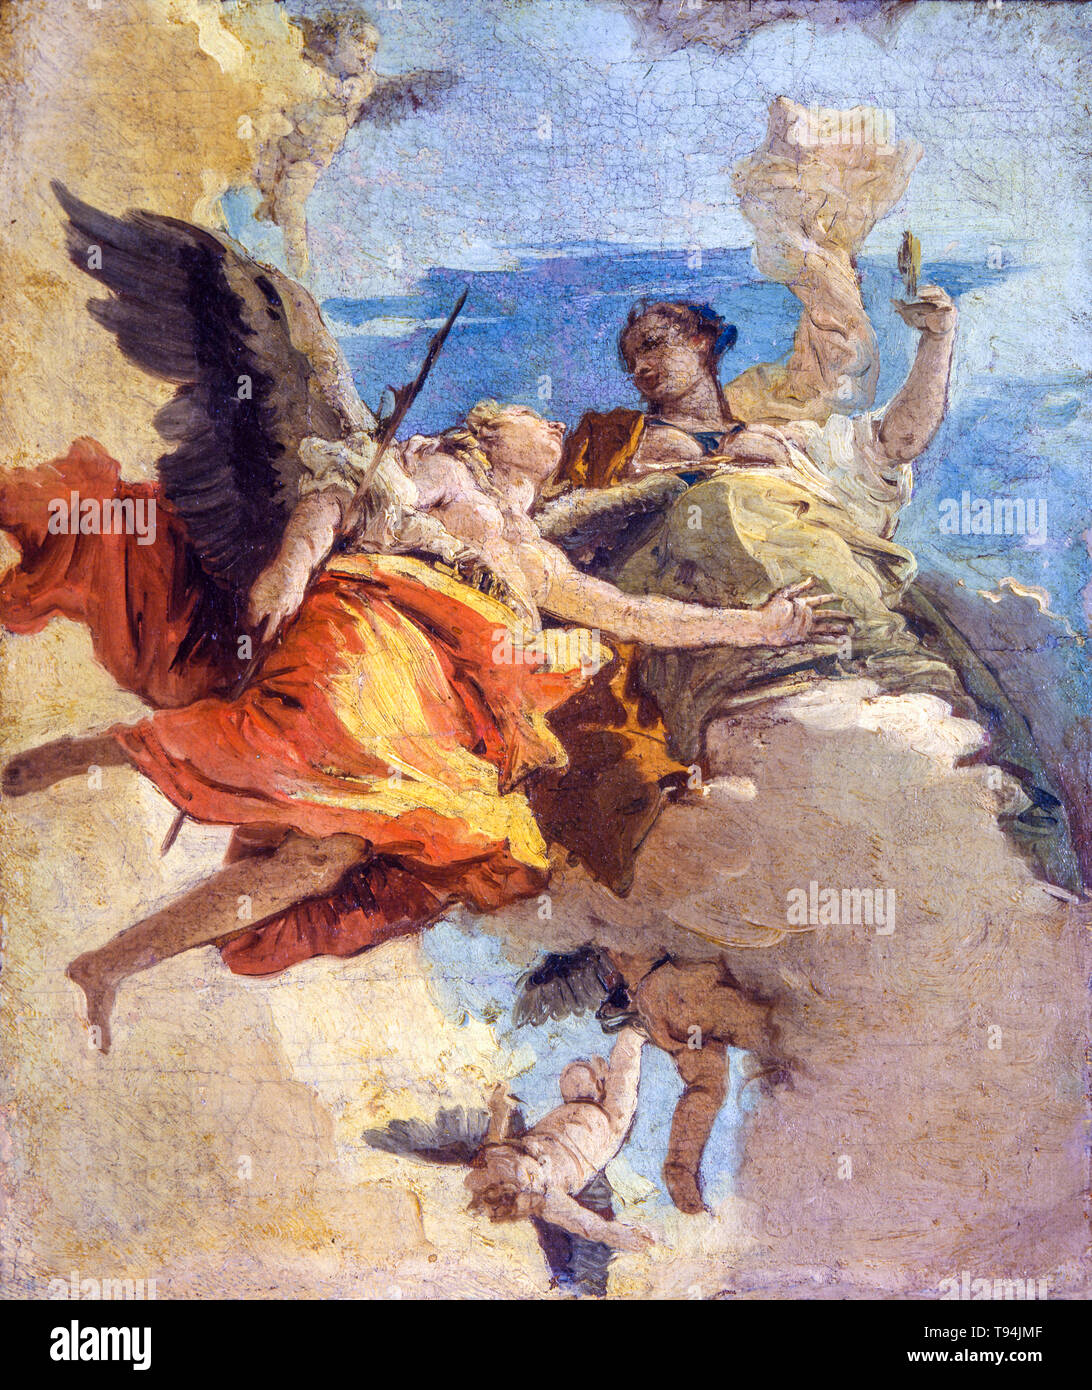 Giovanni Battista Tiepolo, Allegory of Virtue and Nobility, painting, c. 1740 - Stock Image